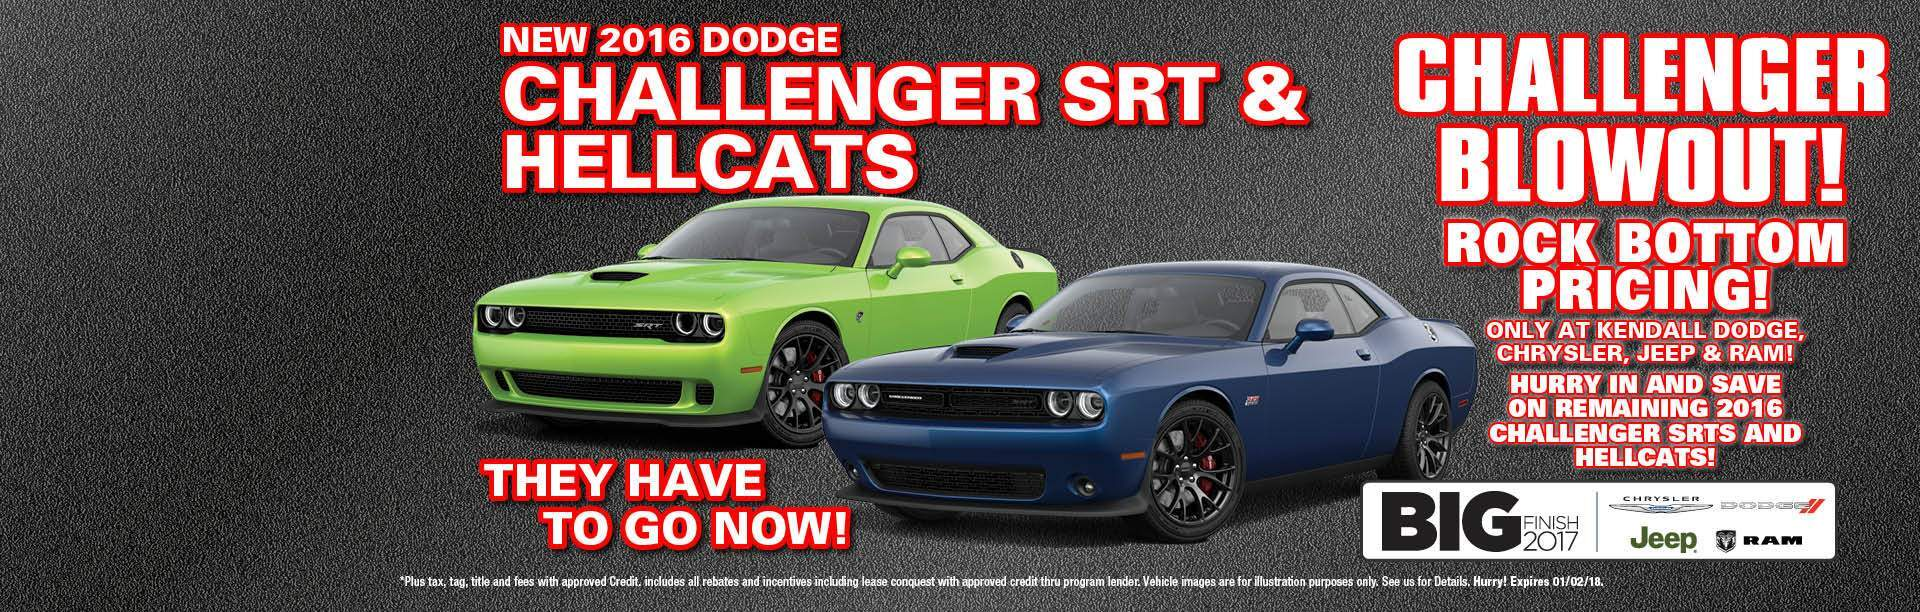 2016 SRT-HELLCAT BLOW OUT!!